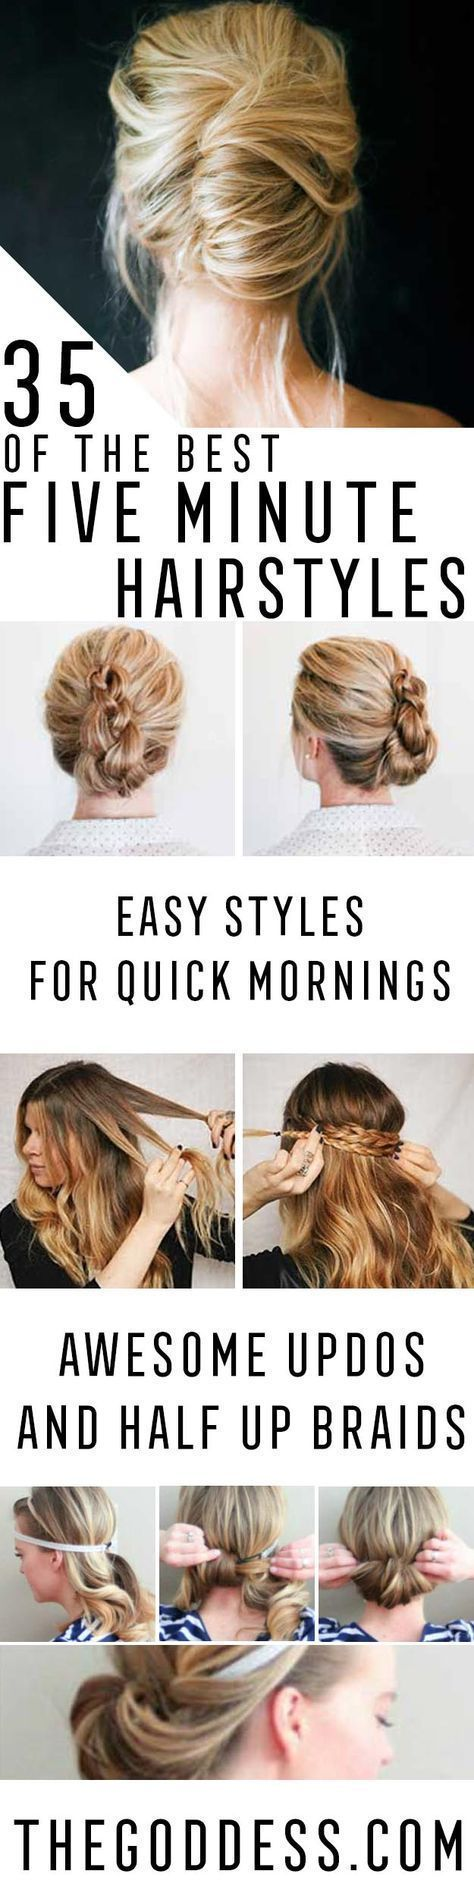 Best 5 Minute Hairstyles - Quick And Easy Hairstyles and Haircuts ...